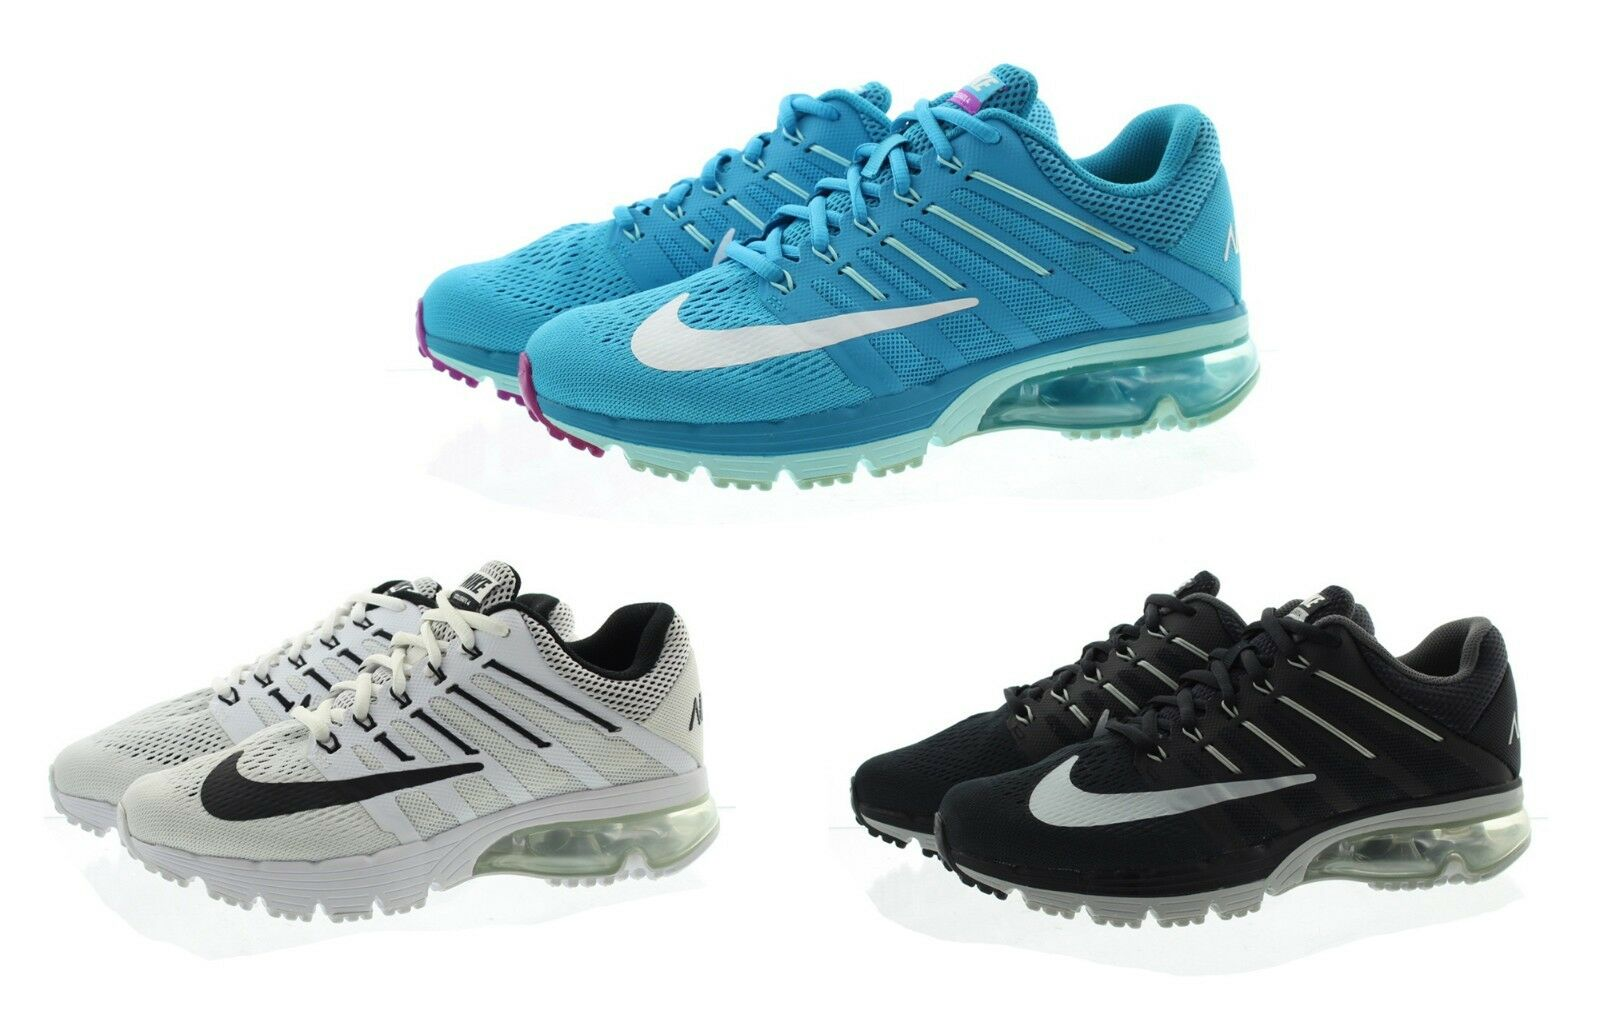 806798 4 Top Running Womens Nike Sneakers Max Shoes Low Air Excellerate WEHY9ID2